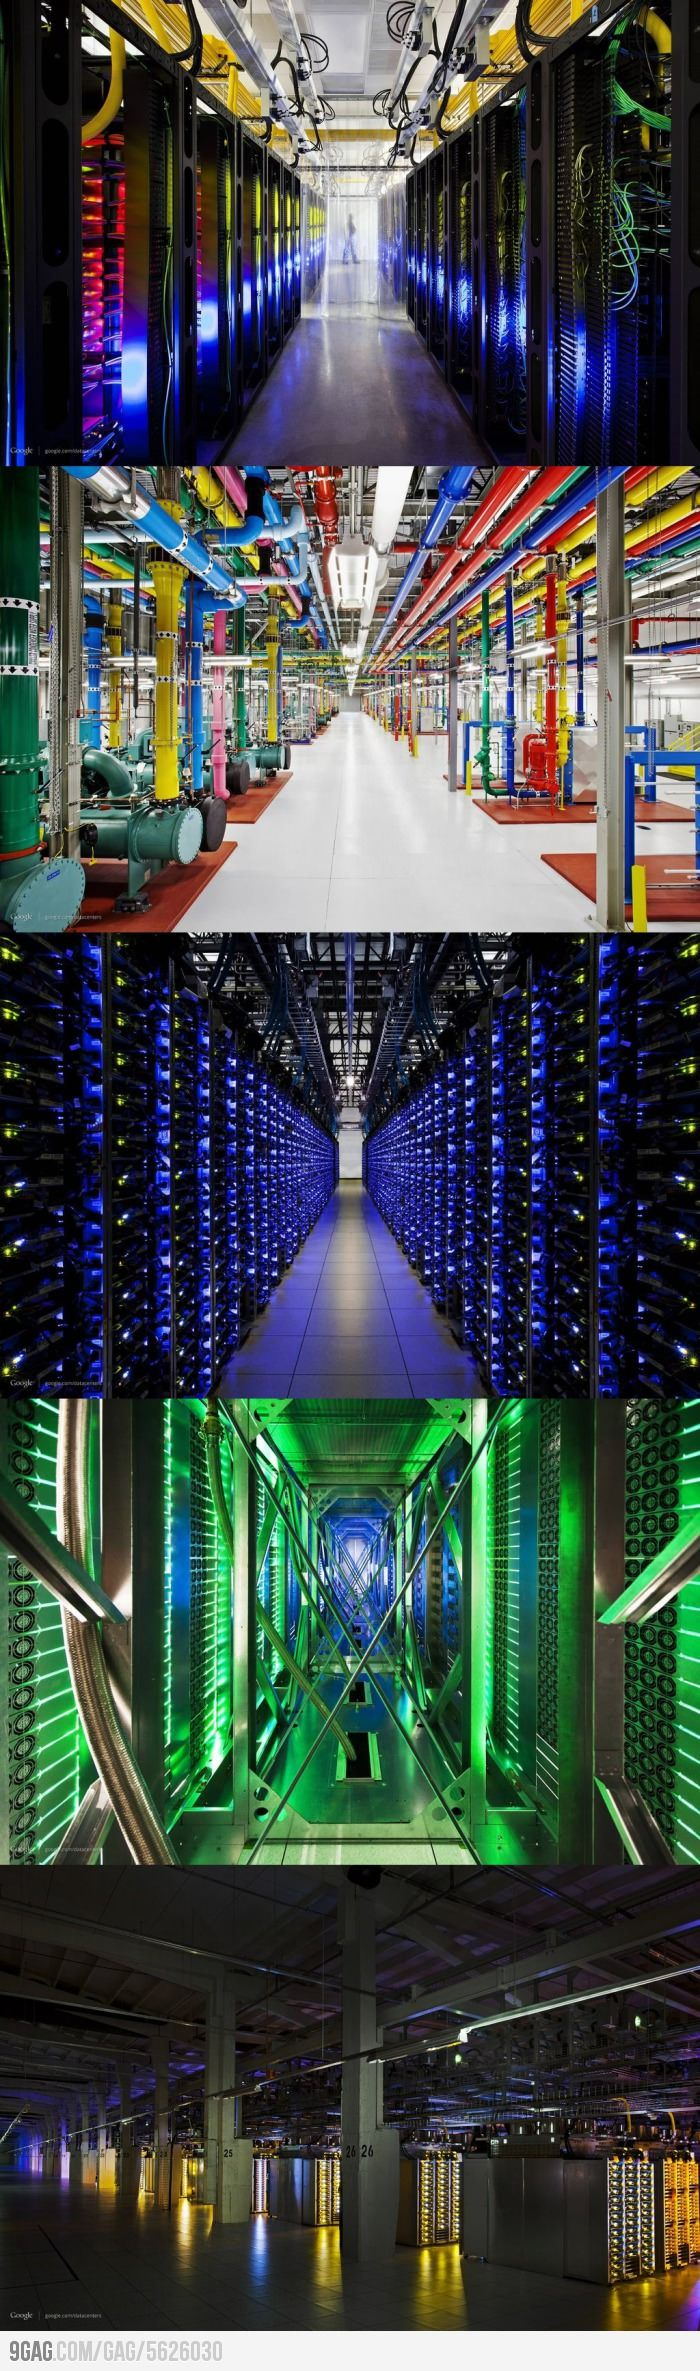 The internet really *is* a series of tubes! - Google's Data Center